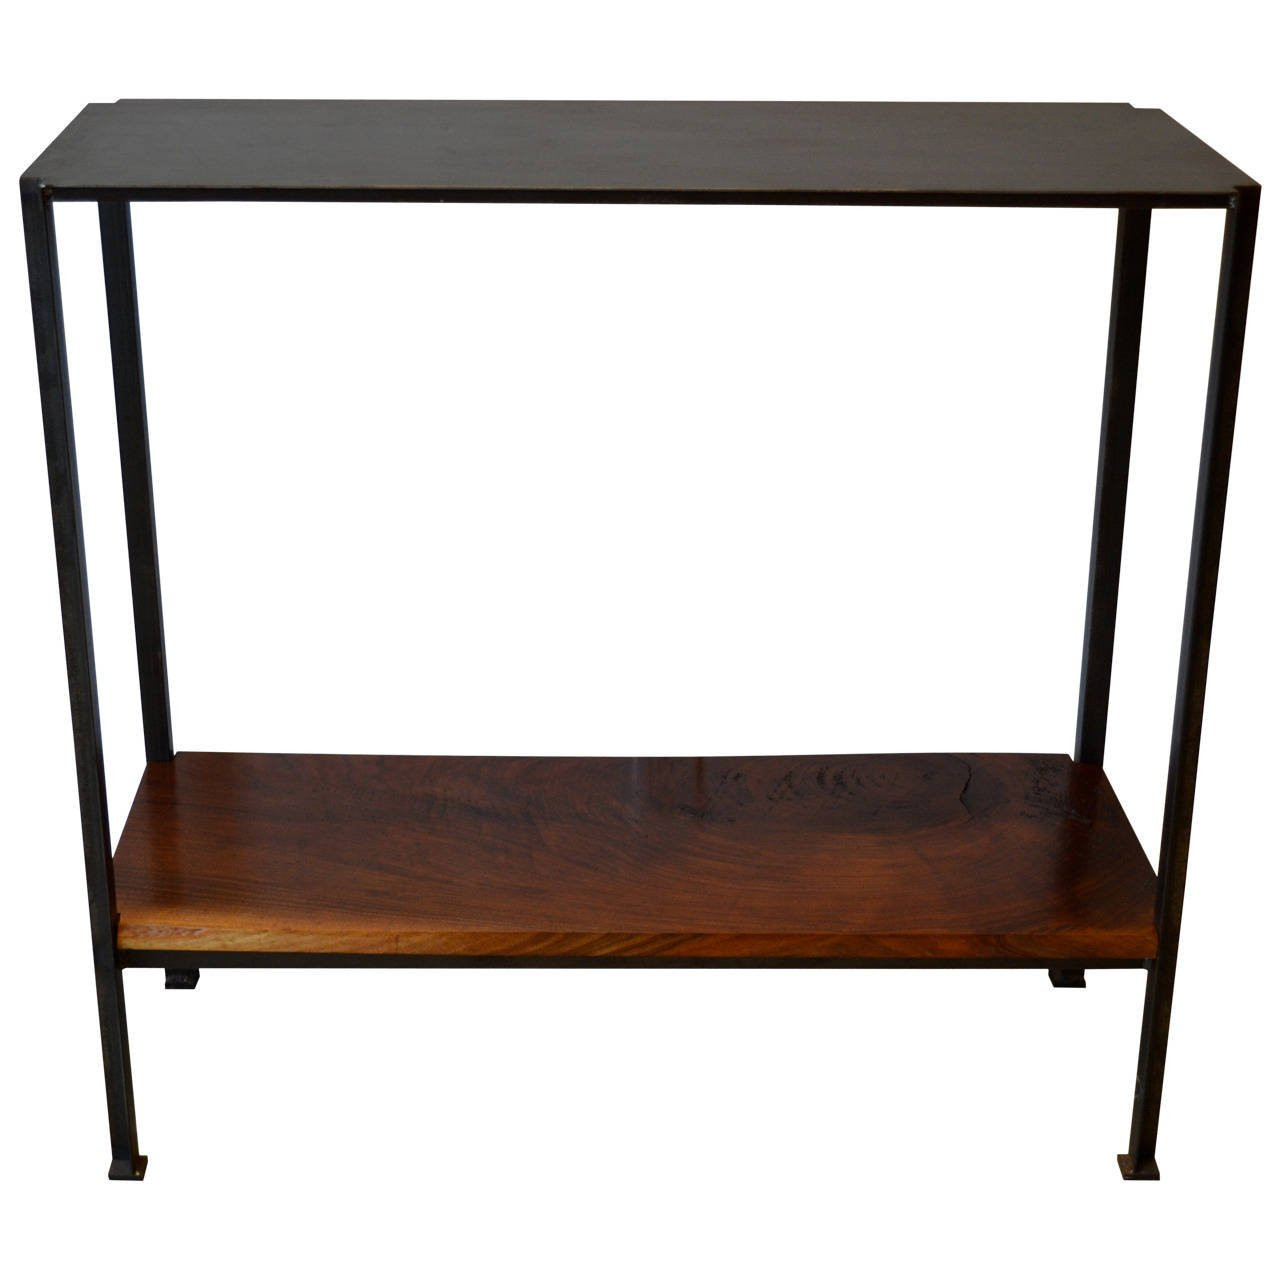 Best ideas about Metal Entryway Table . Save or Pin Industrail Metal Foyer Table with Walnut Shelf at 1stdibs Now.